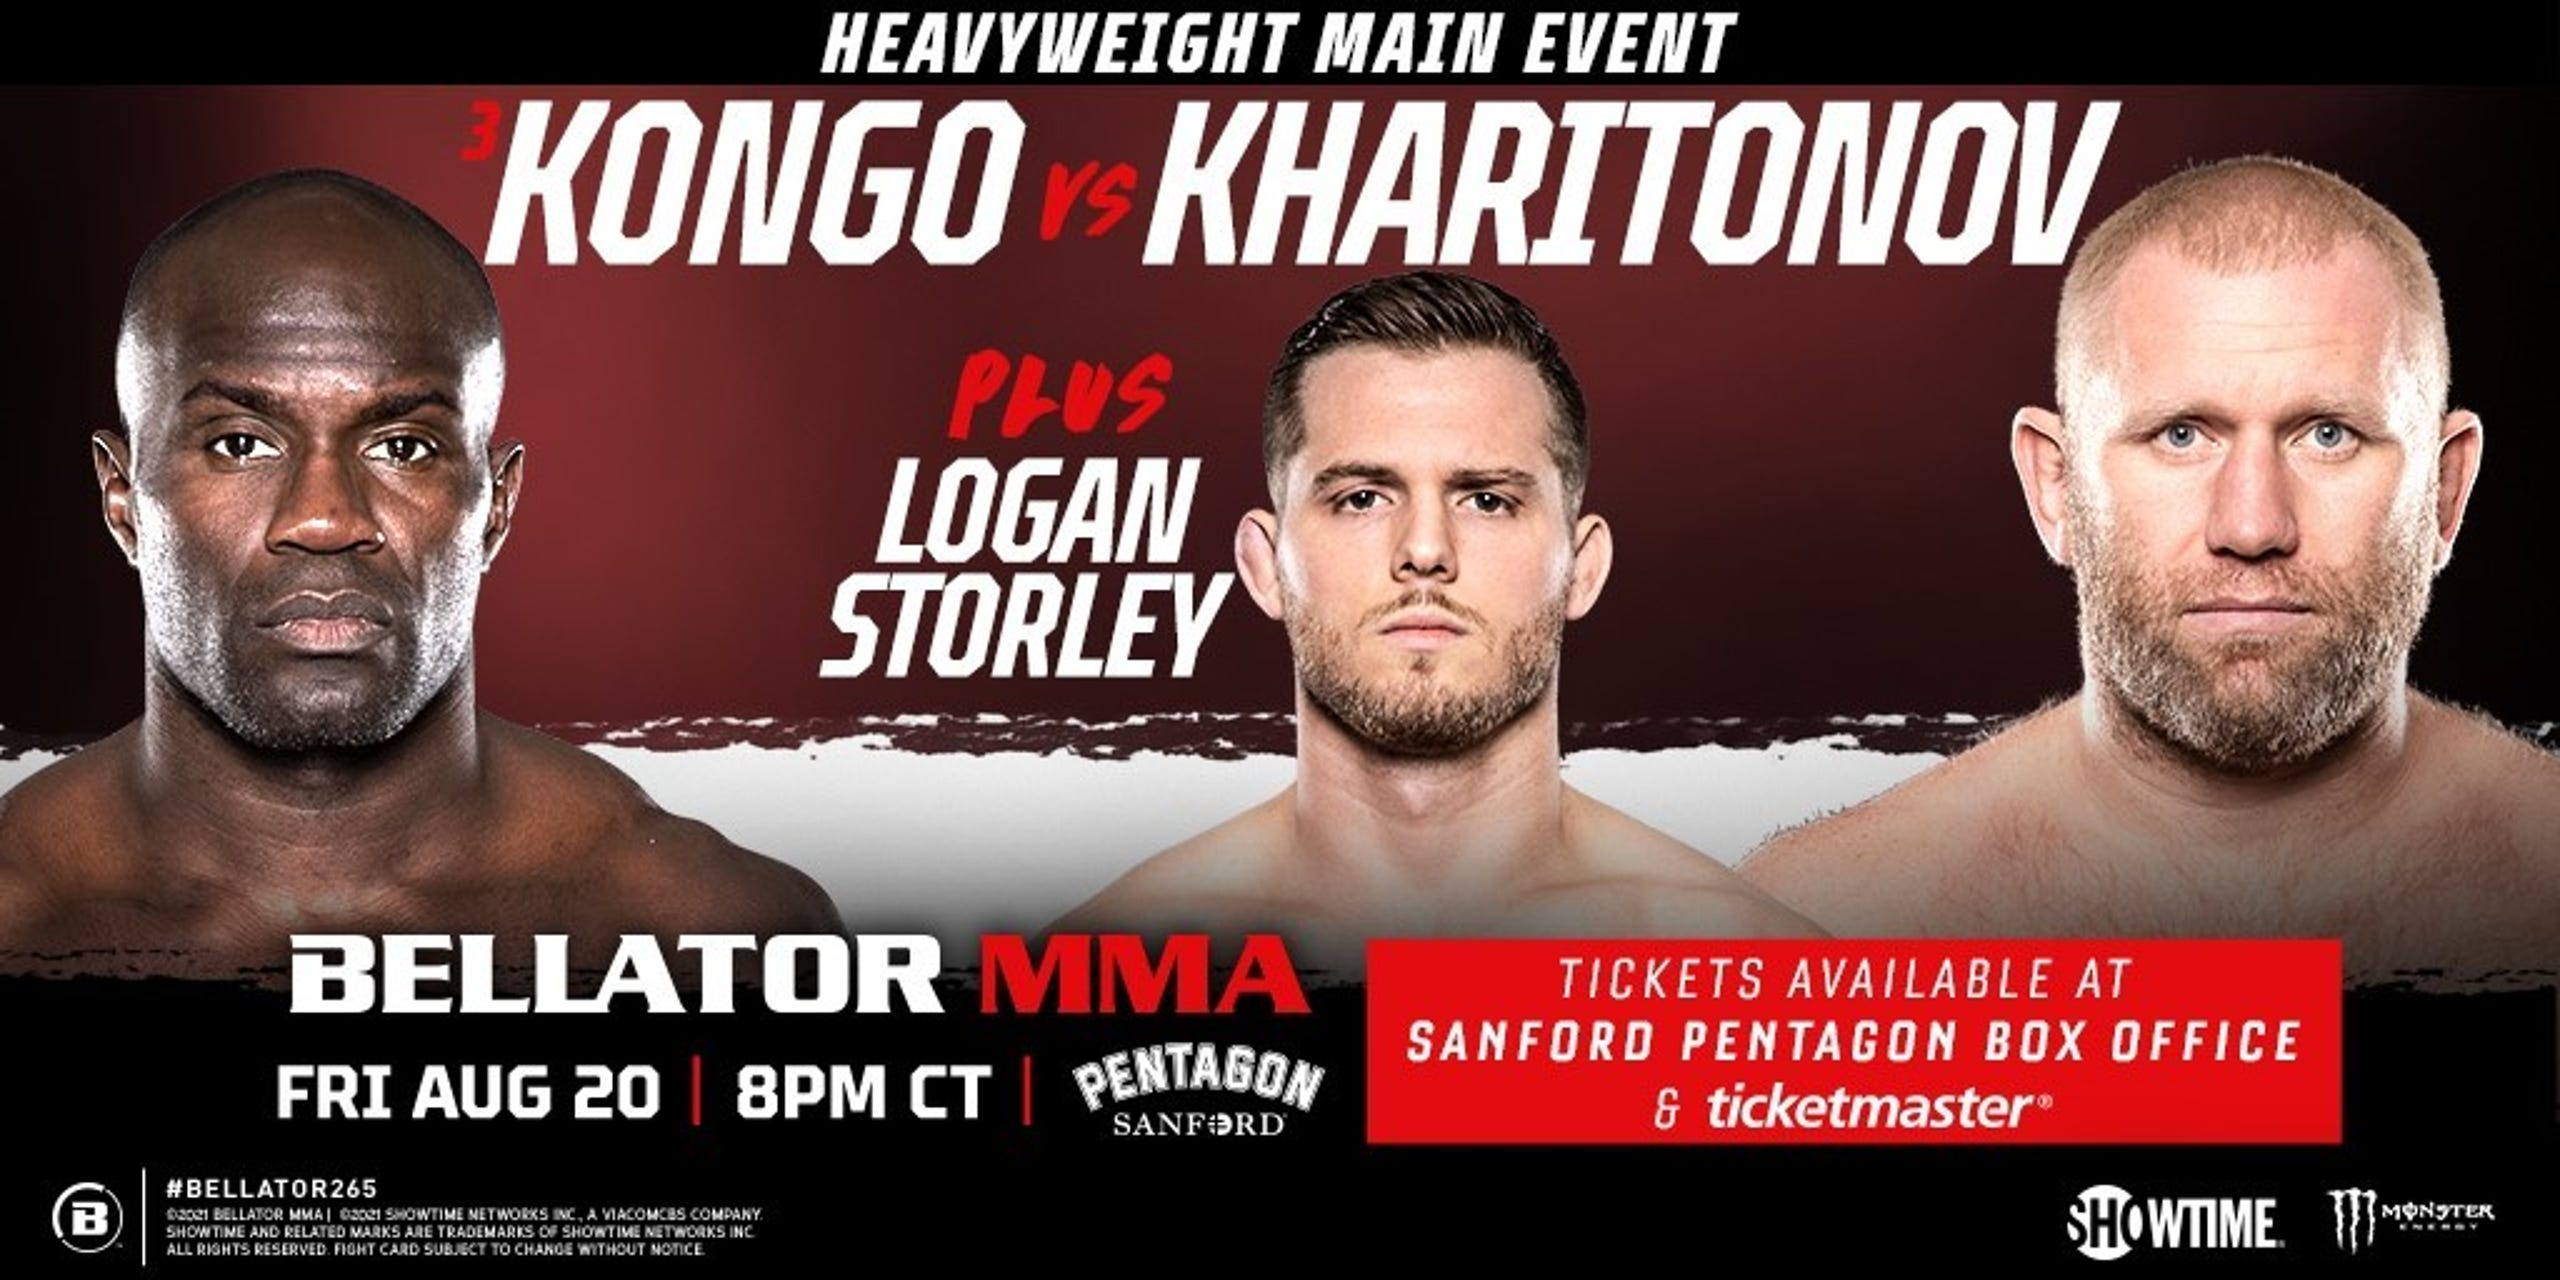 Bellator will feature the heavyweight Kongo v. Kharitonov event plus two more. Local Logan Storley will face a to-be-determined opponent.